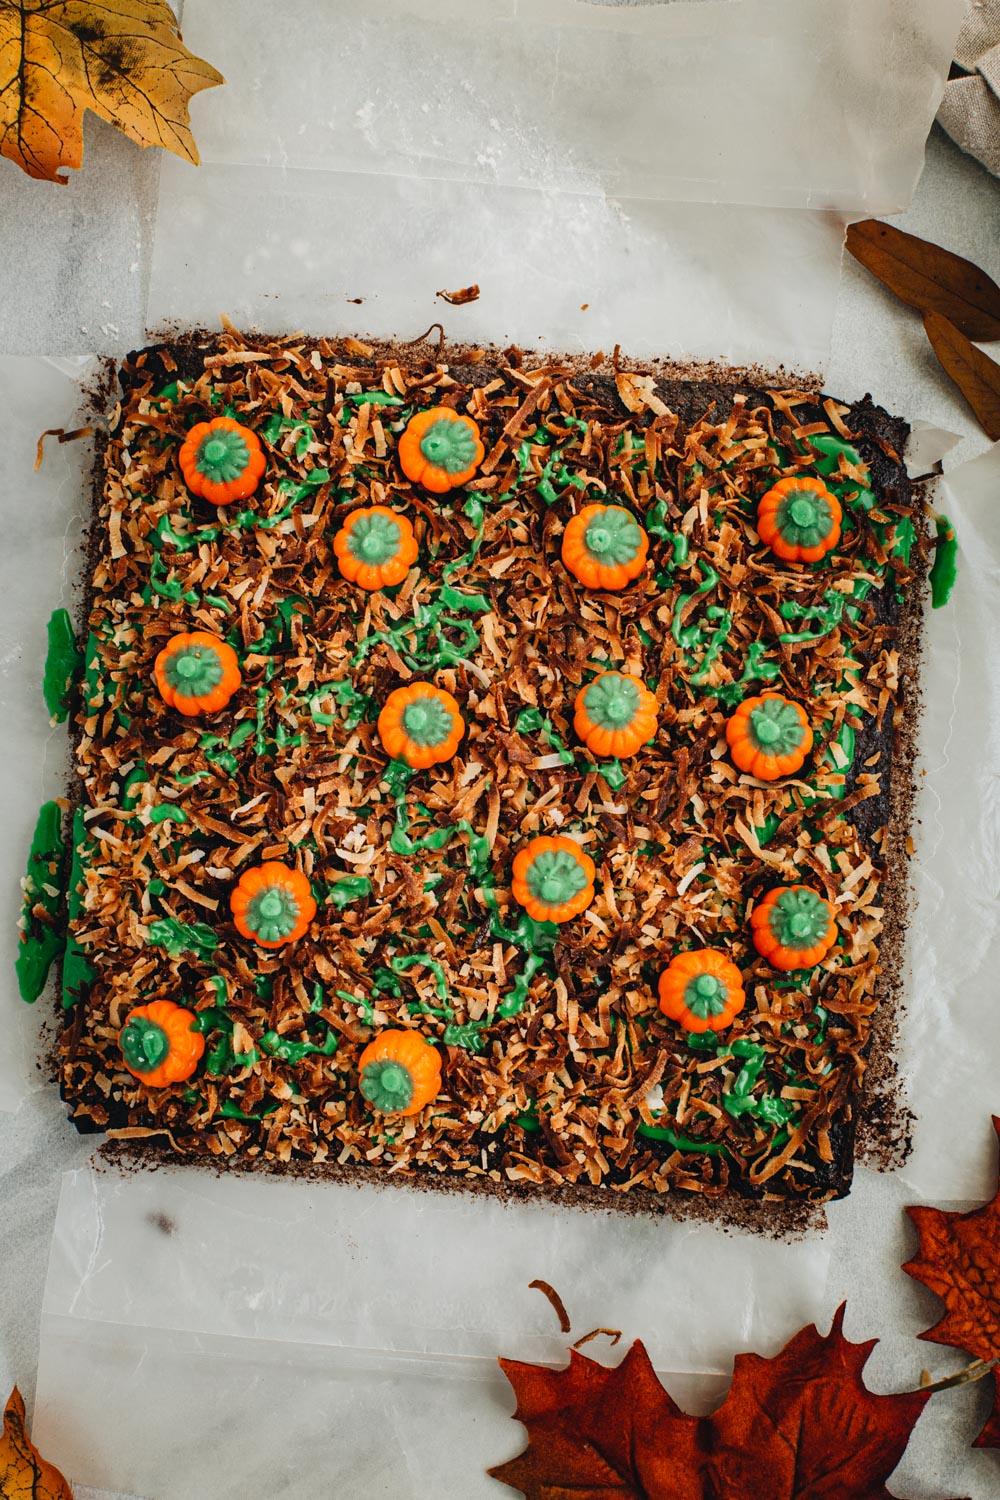 Pumpkin patch brownies topped with toasted coconut and pumpkin mellowcremes. Surrounded by fall leaves.